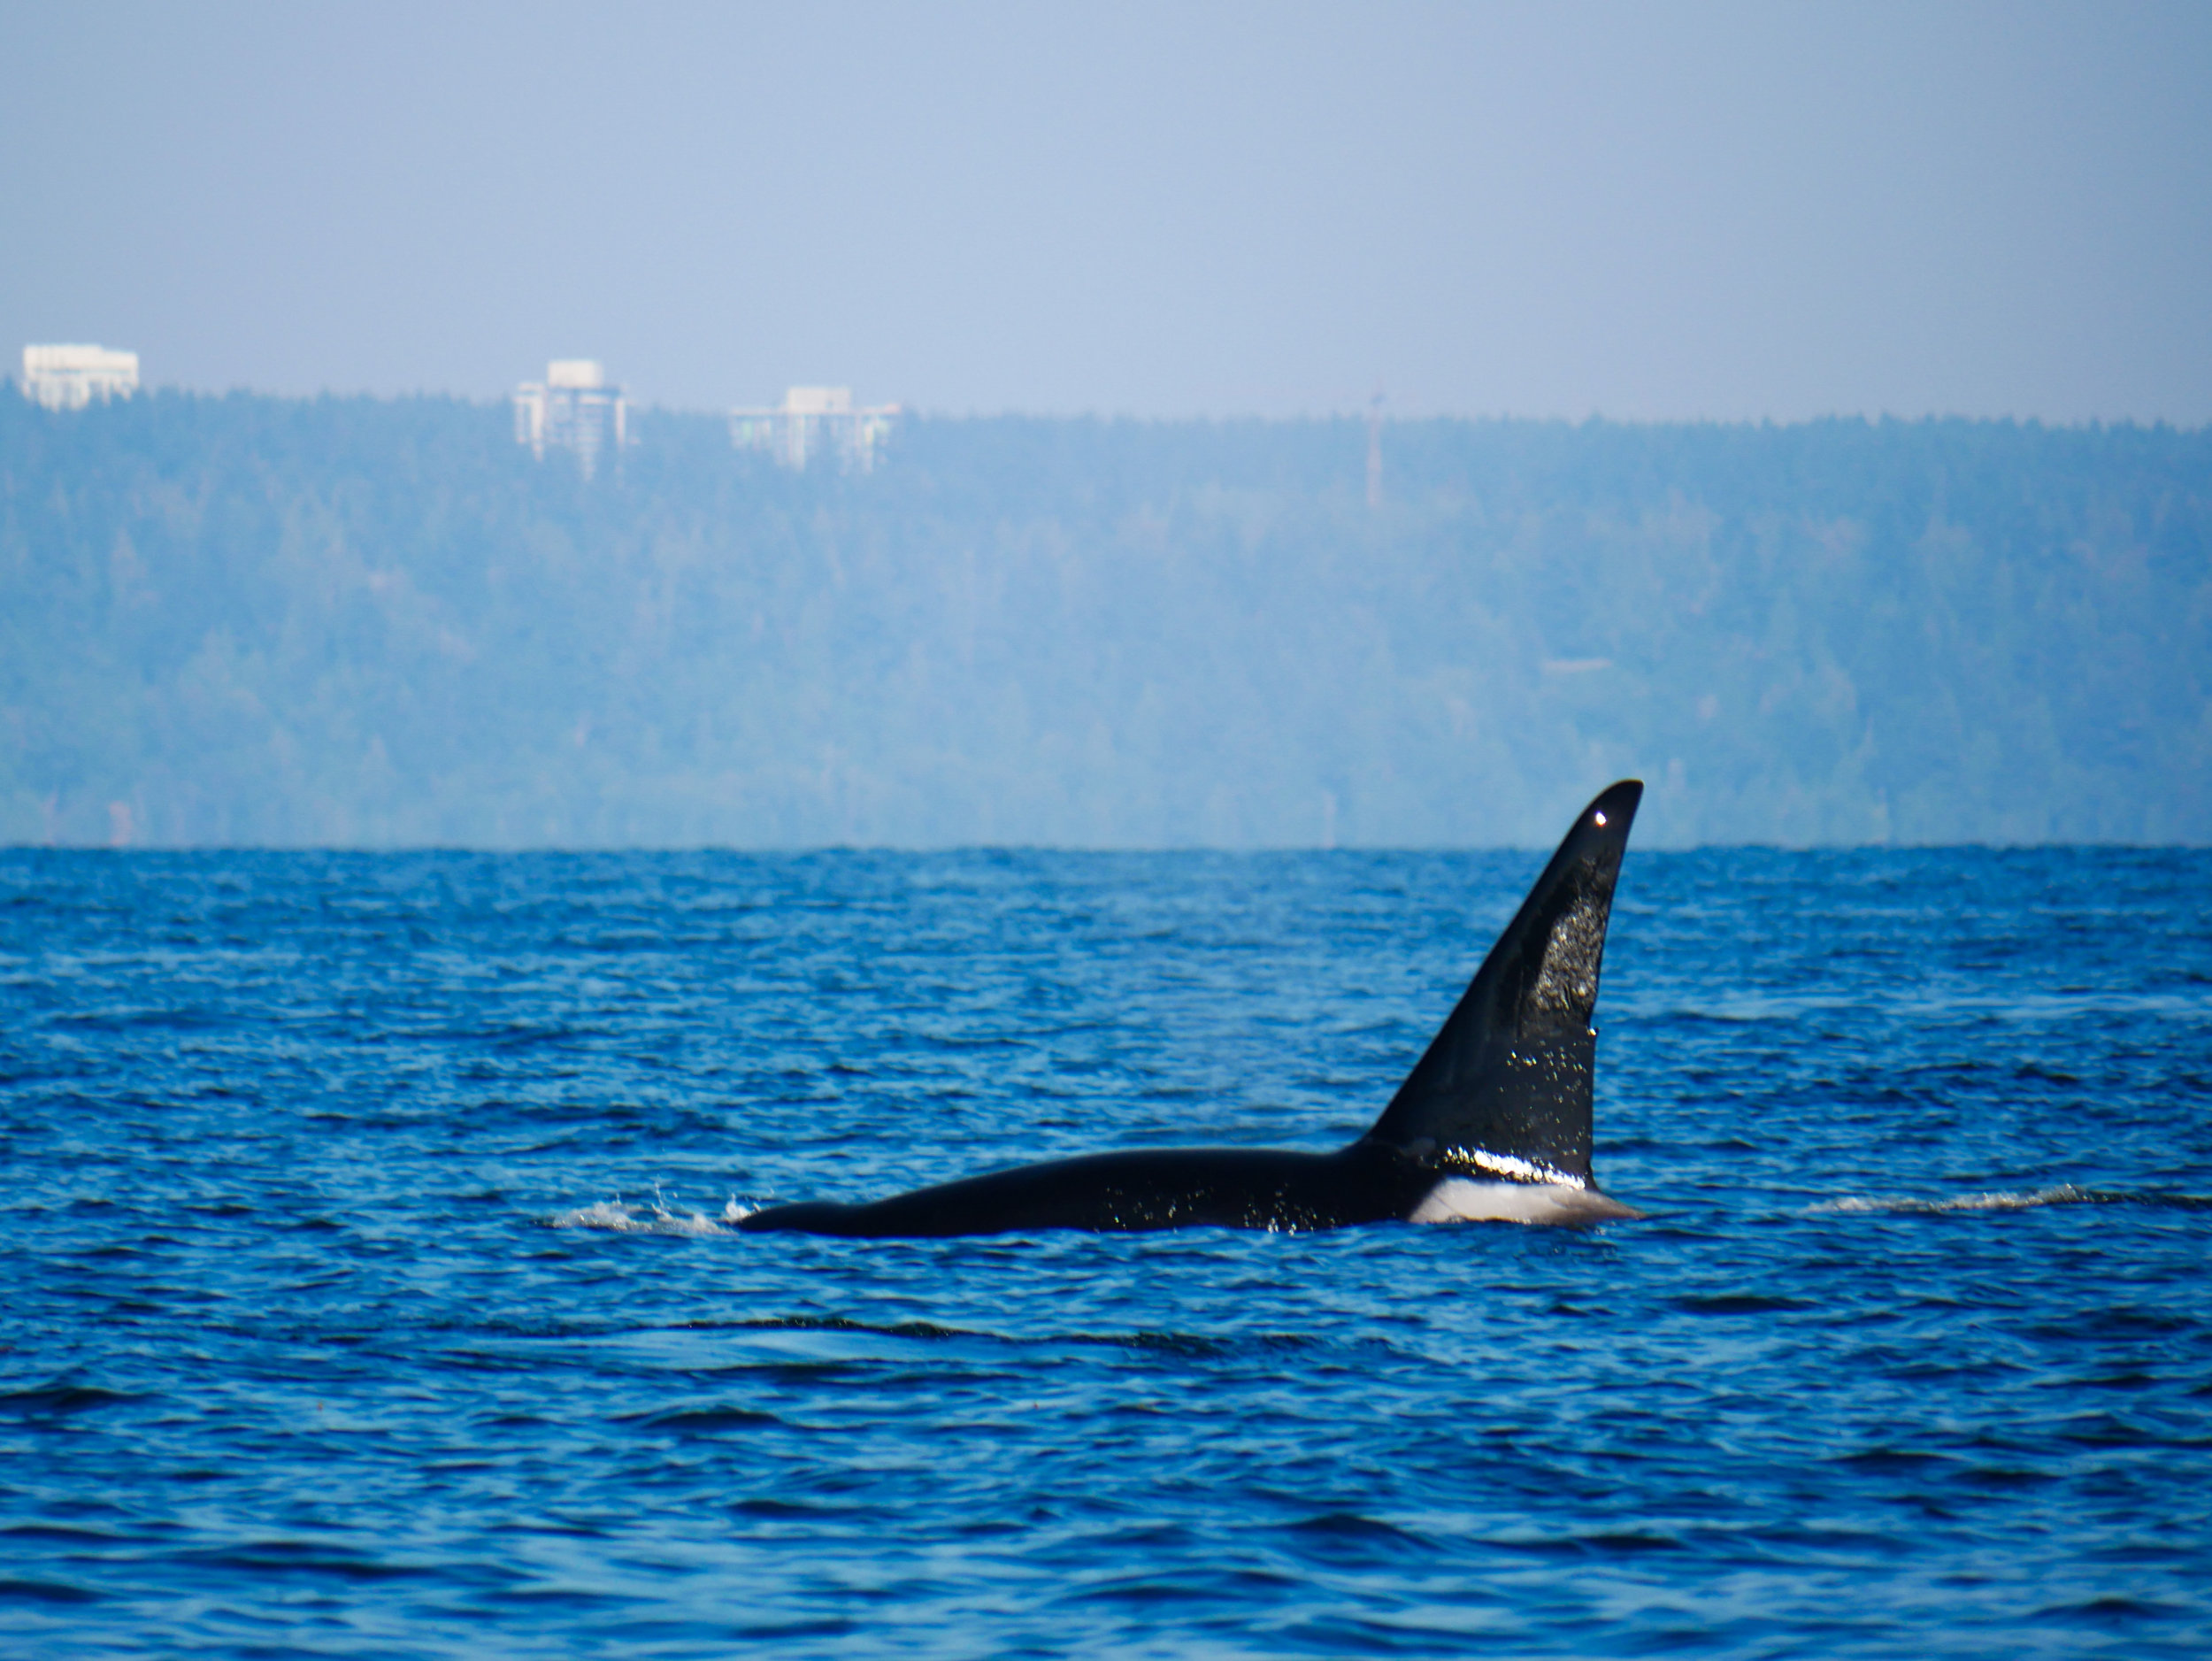 T46E (15 year old male) surfacing. Photo by Val Watson - 3:30 tour.